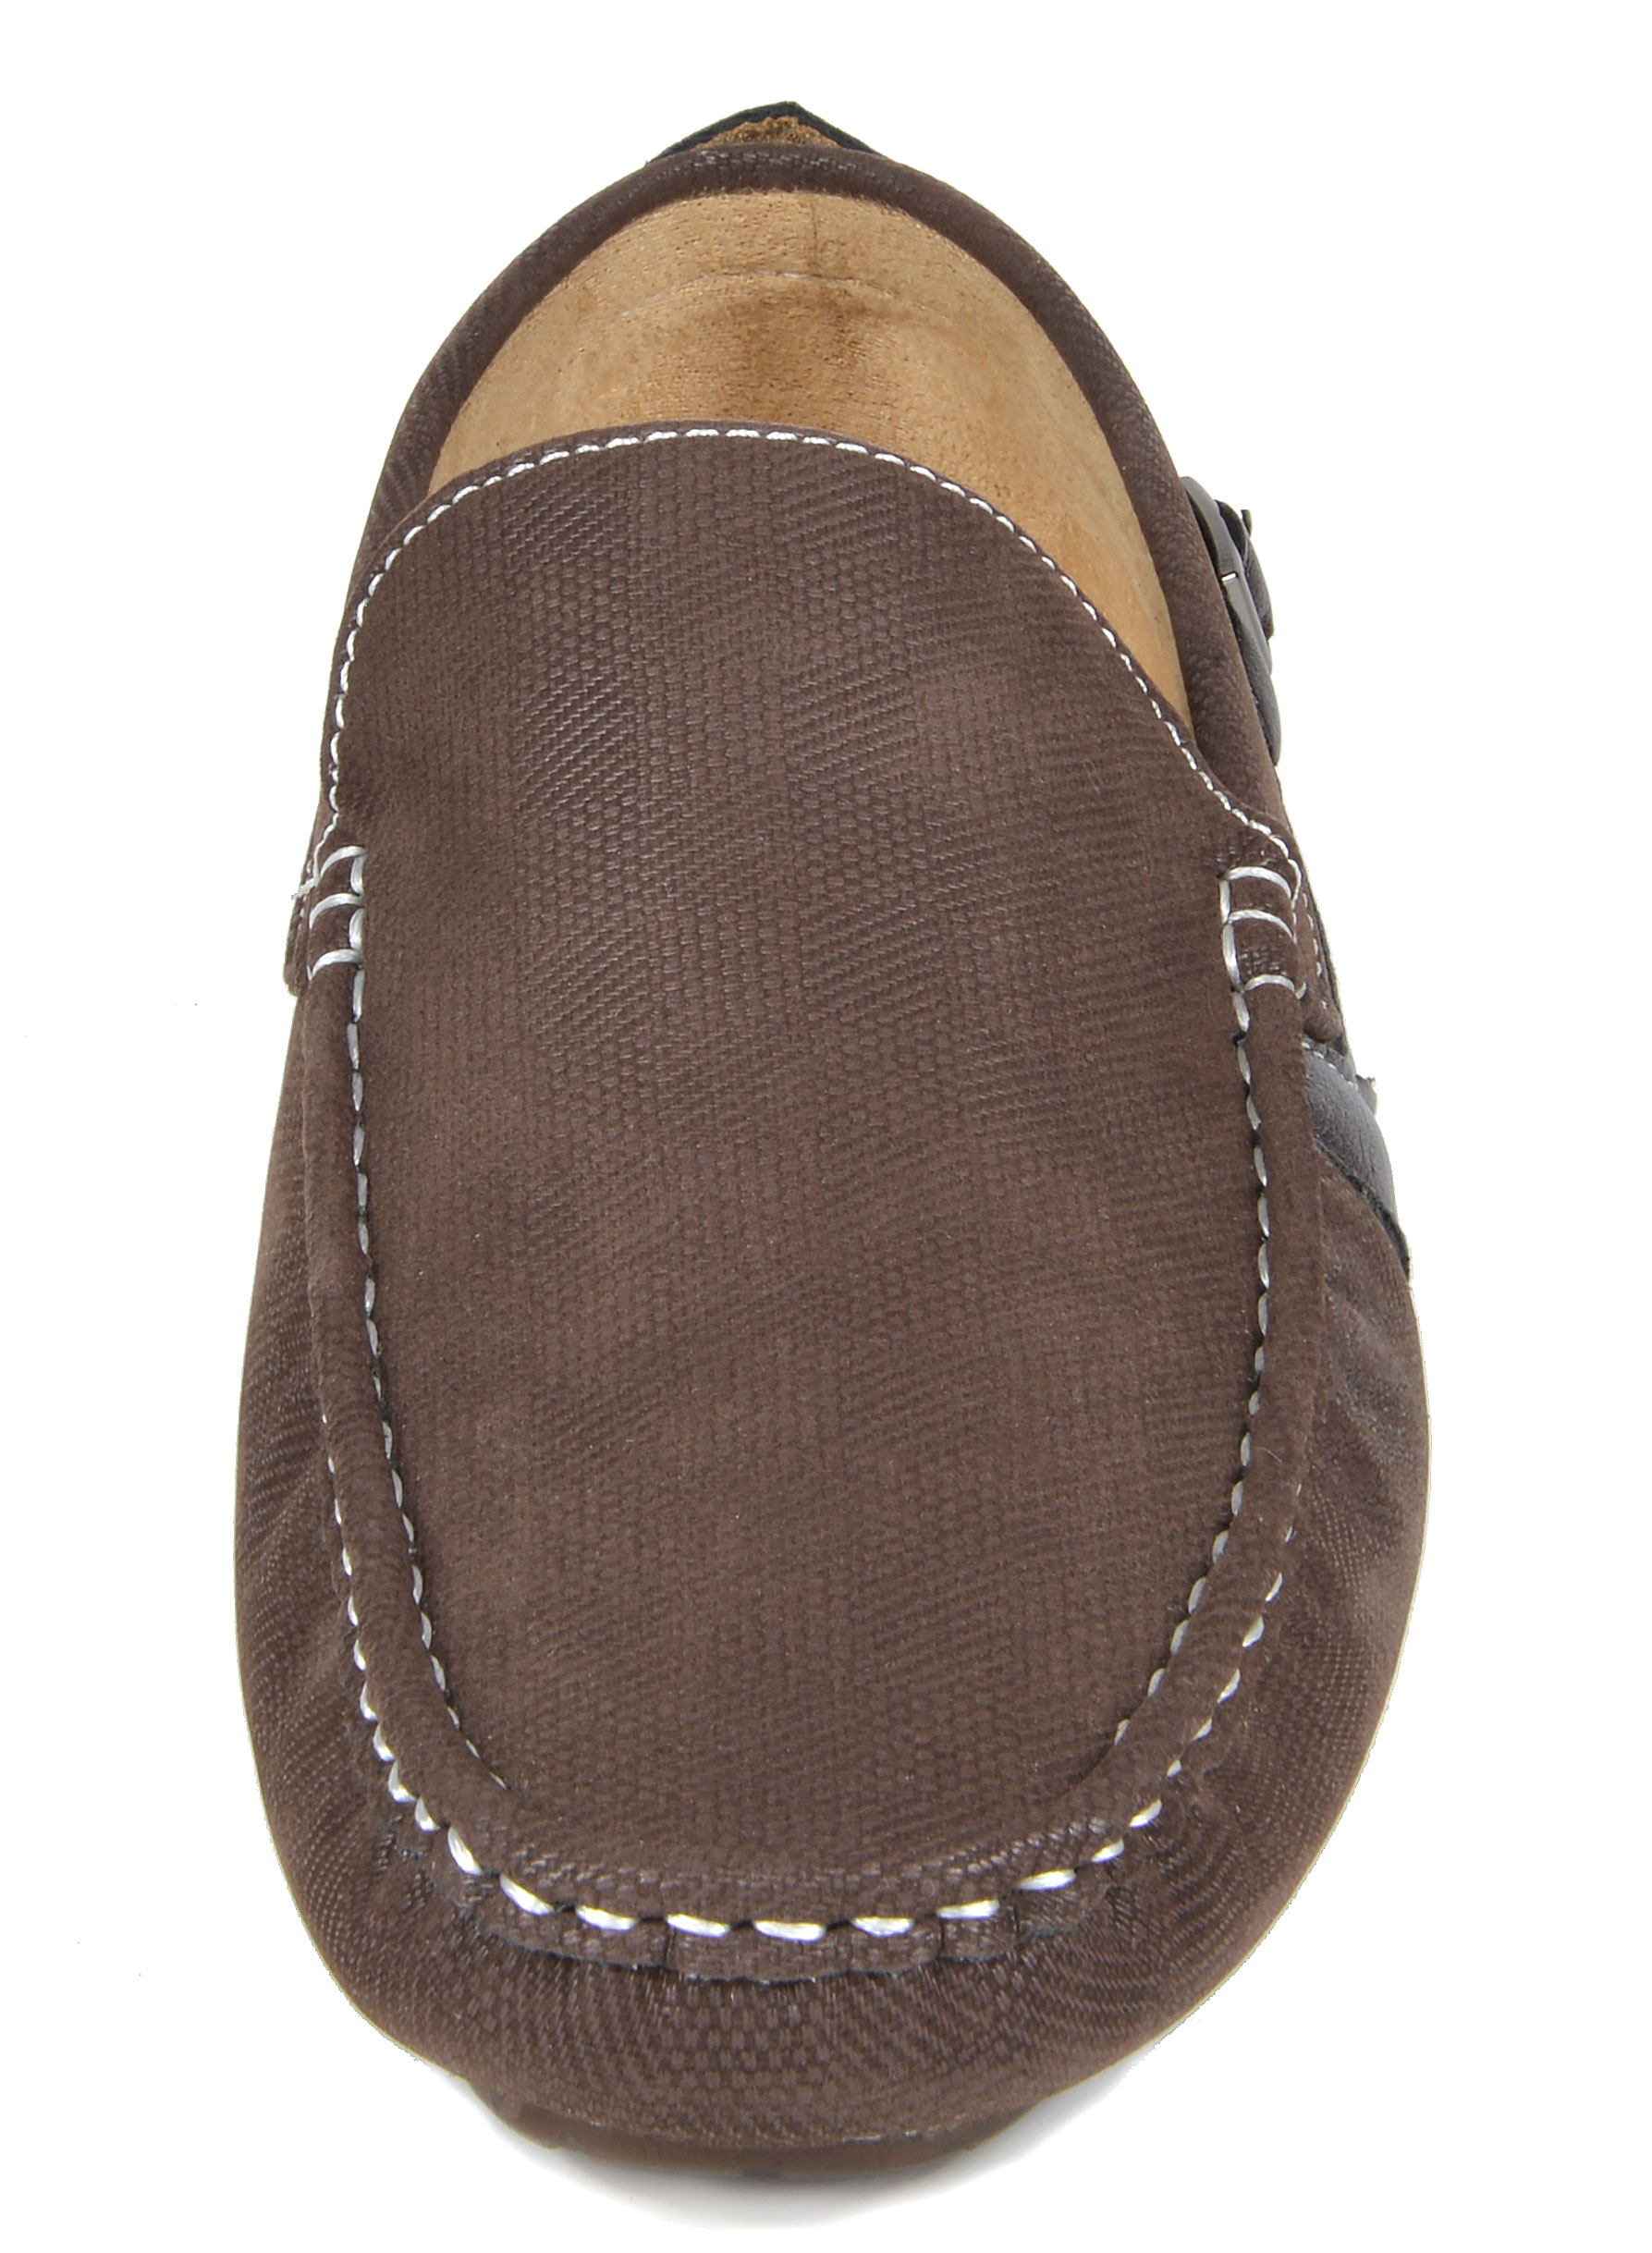 Bruno-Marc-Men-039-s-New-Classic-Fashion-Slip-on-Driving-Casual-Loafers-Boat-Shoes thumbnail 69